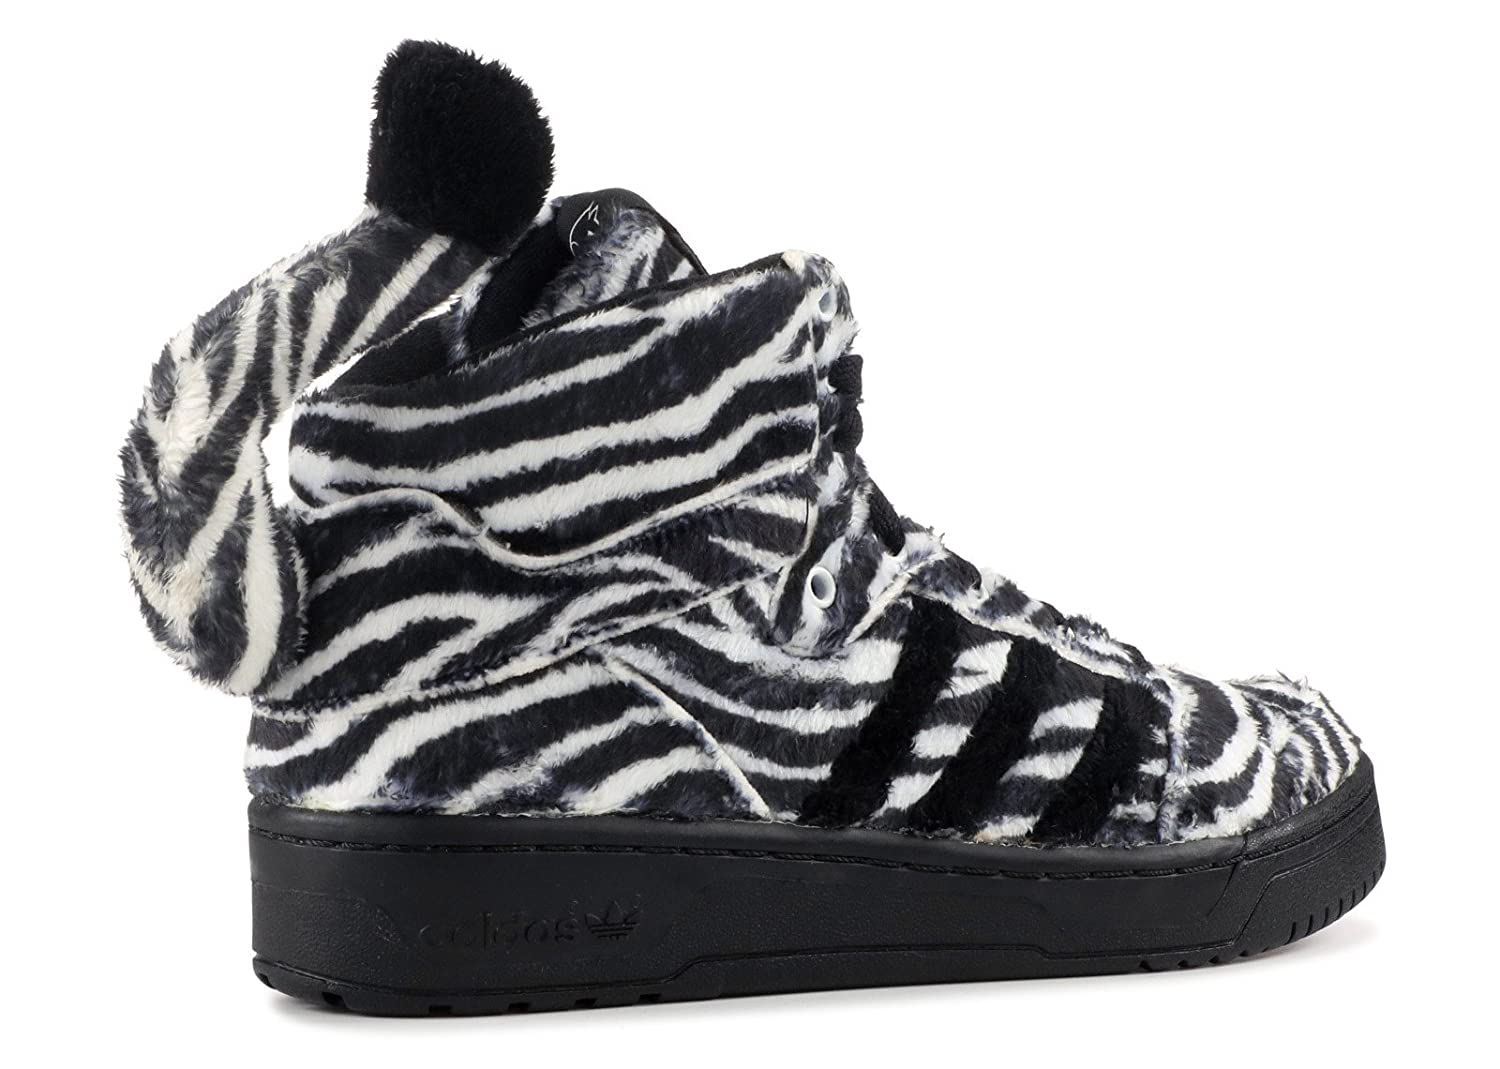 38c39bf30 adidas originals jeremy scott JS ZEBRA mens hi top trainers G95749 sneakers  shoes